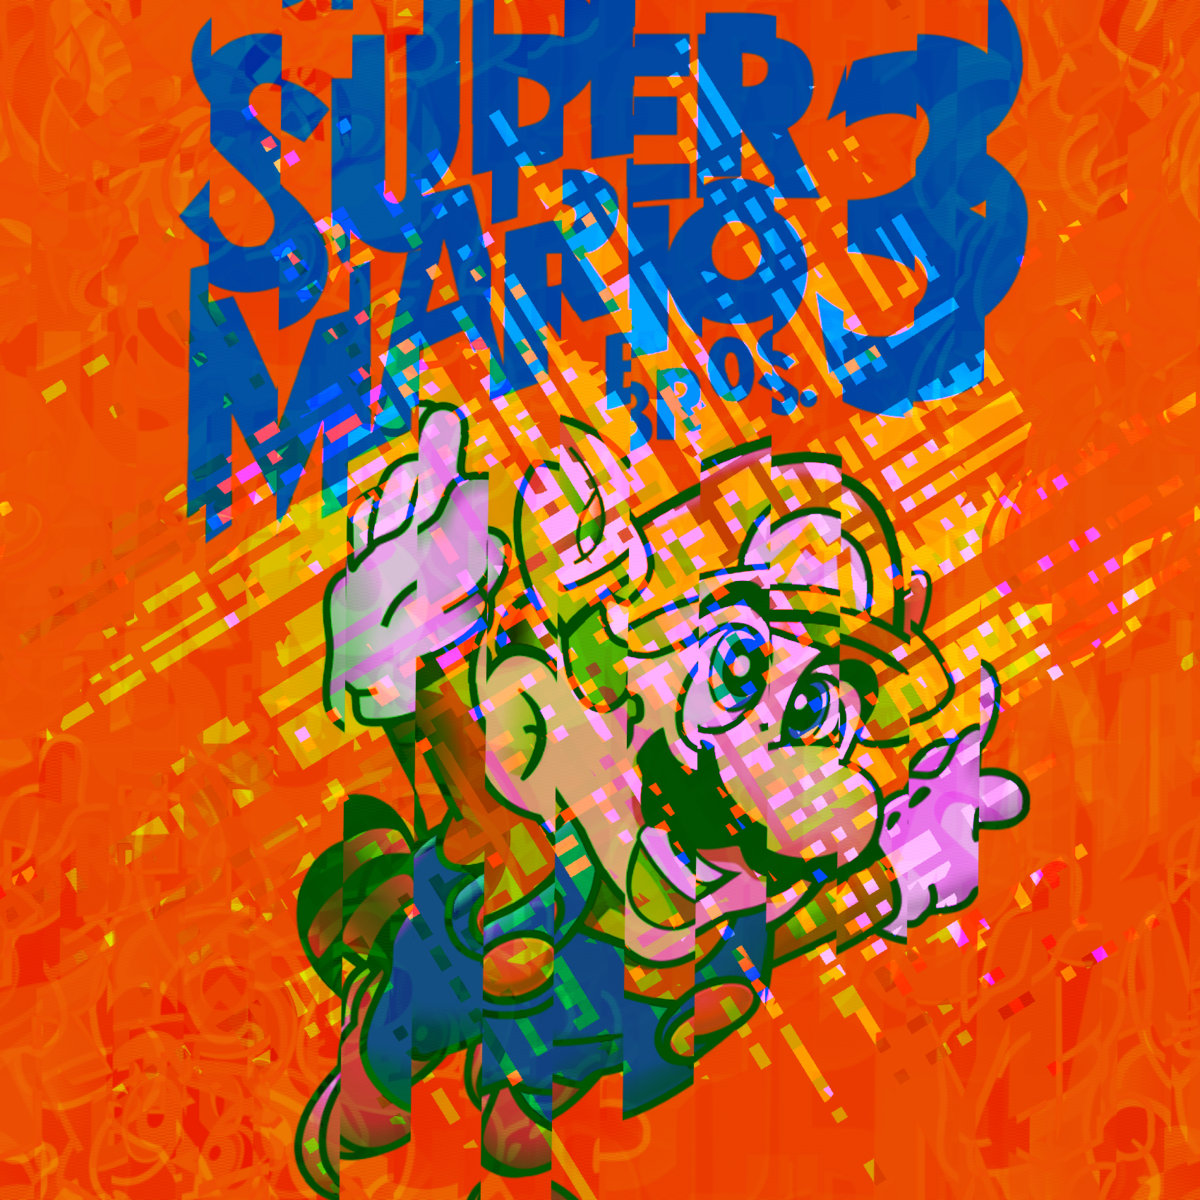 Super Mario Bros  3 Soundtrack: Corrupted | BoxTar